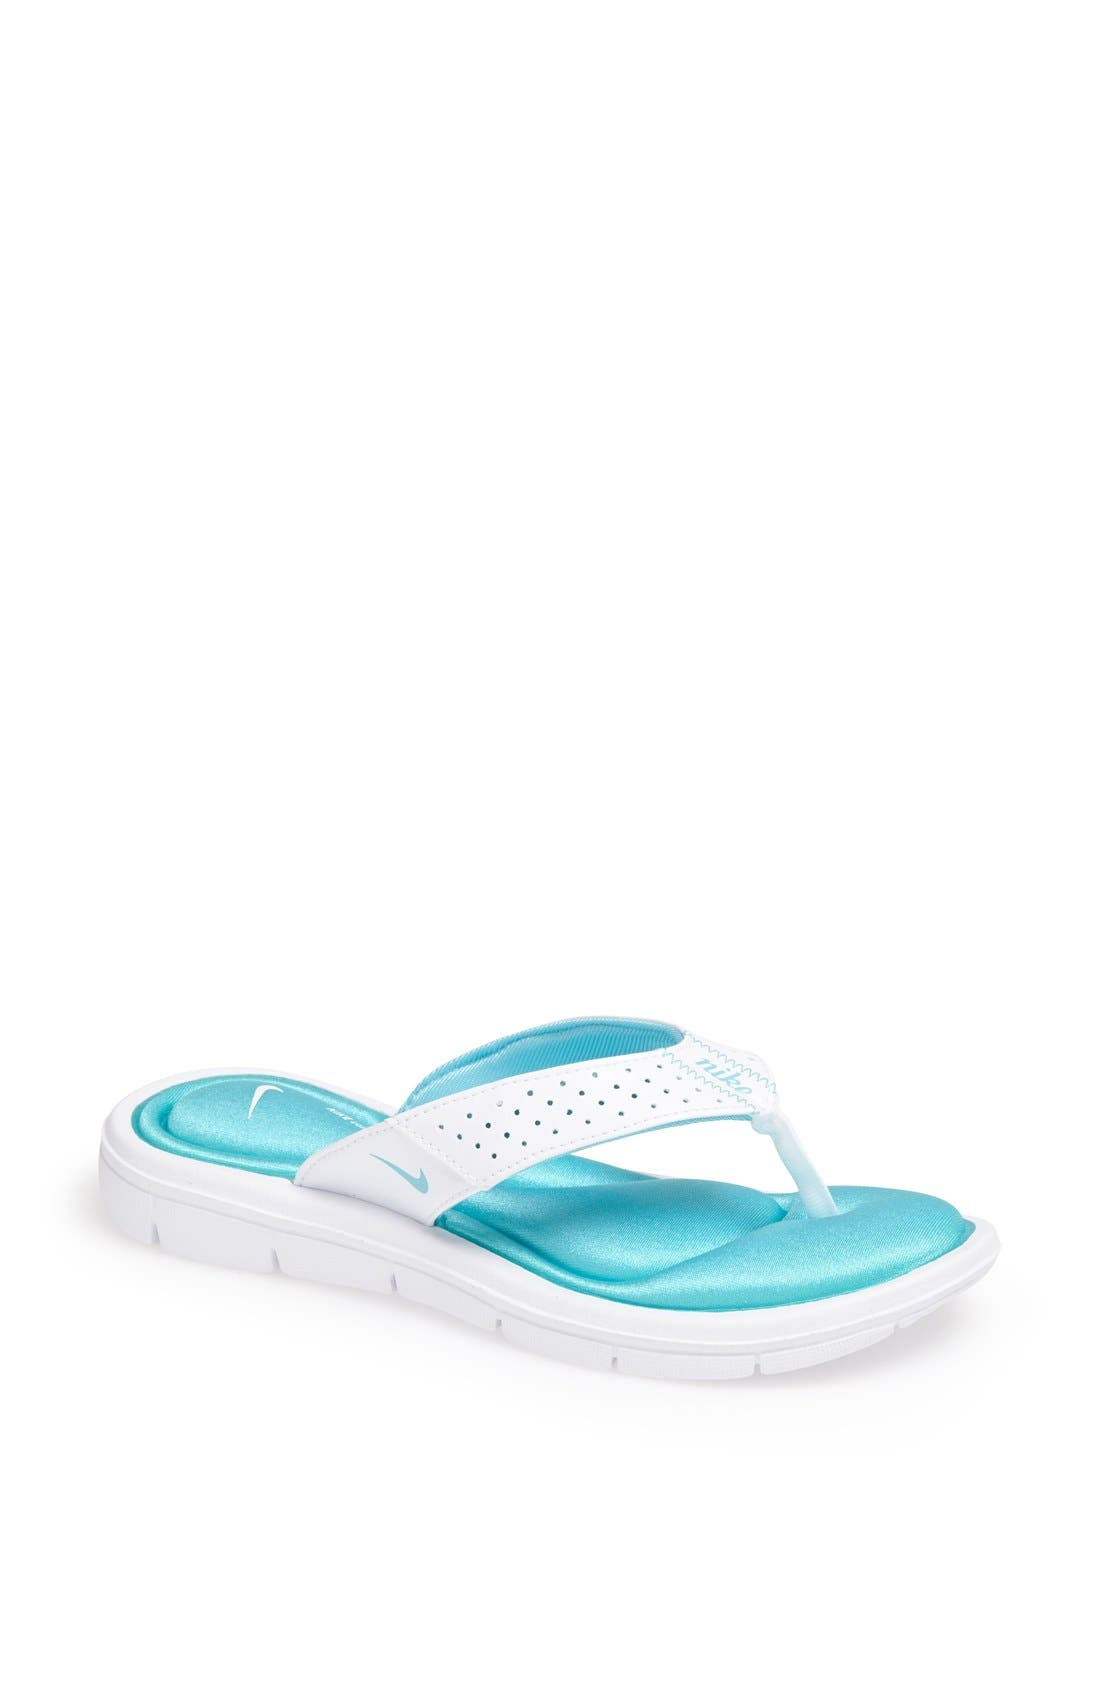 Alternate Image 1 Selected - Nike 'Comfort' Sandal (Women)